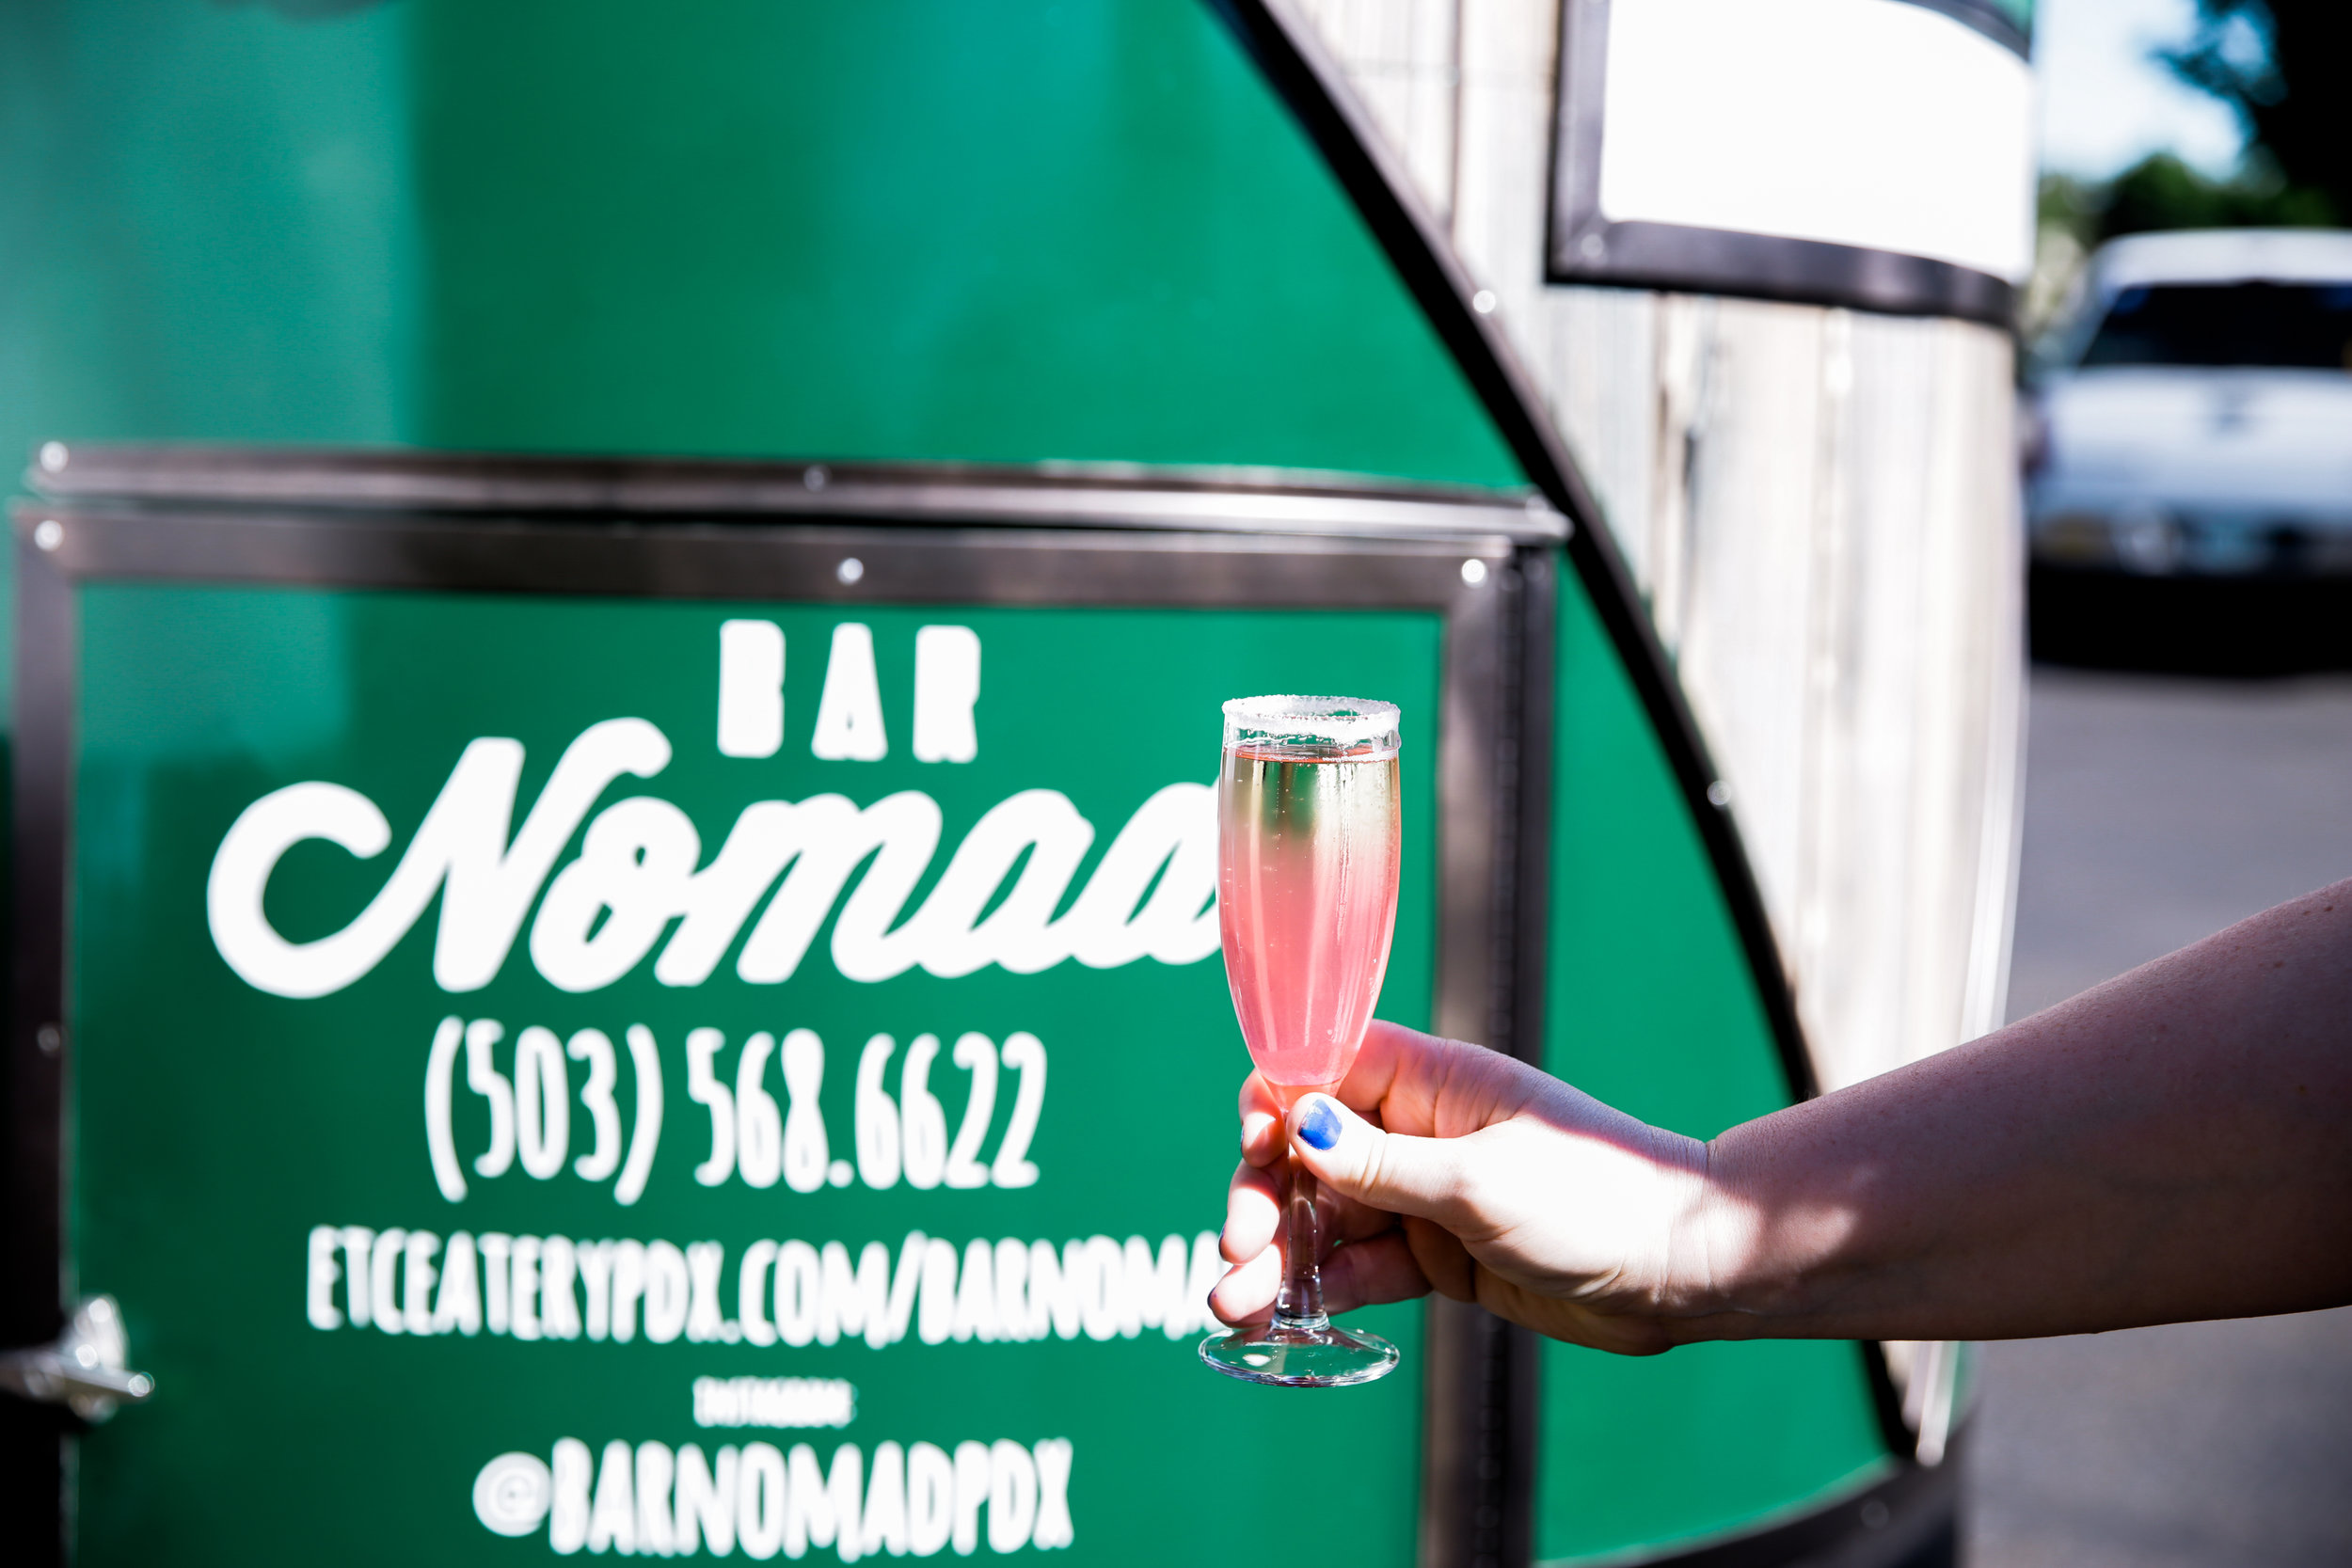 BAR NOMAD RENTAL - etc... eatery provides full-service beverage catering for any event, anywhere, any time